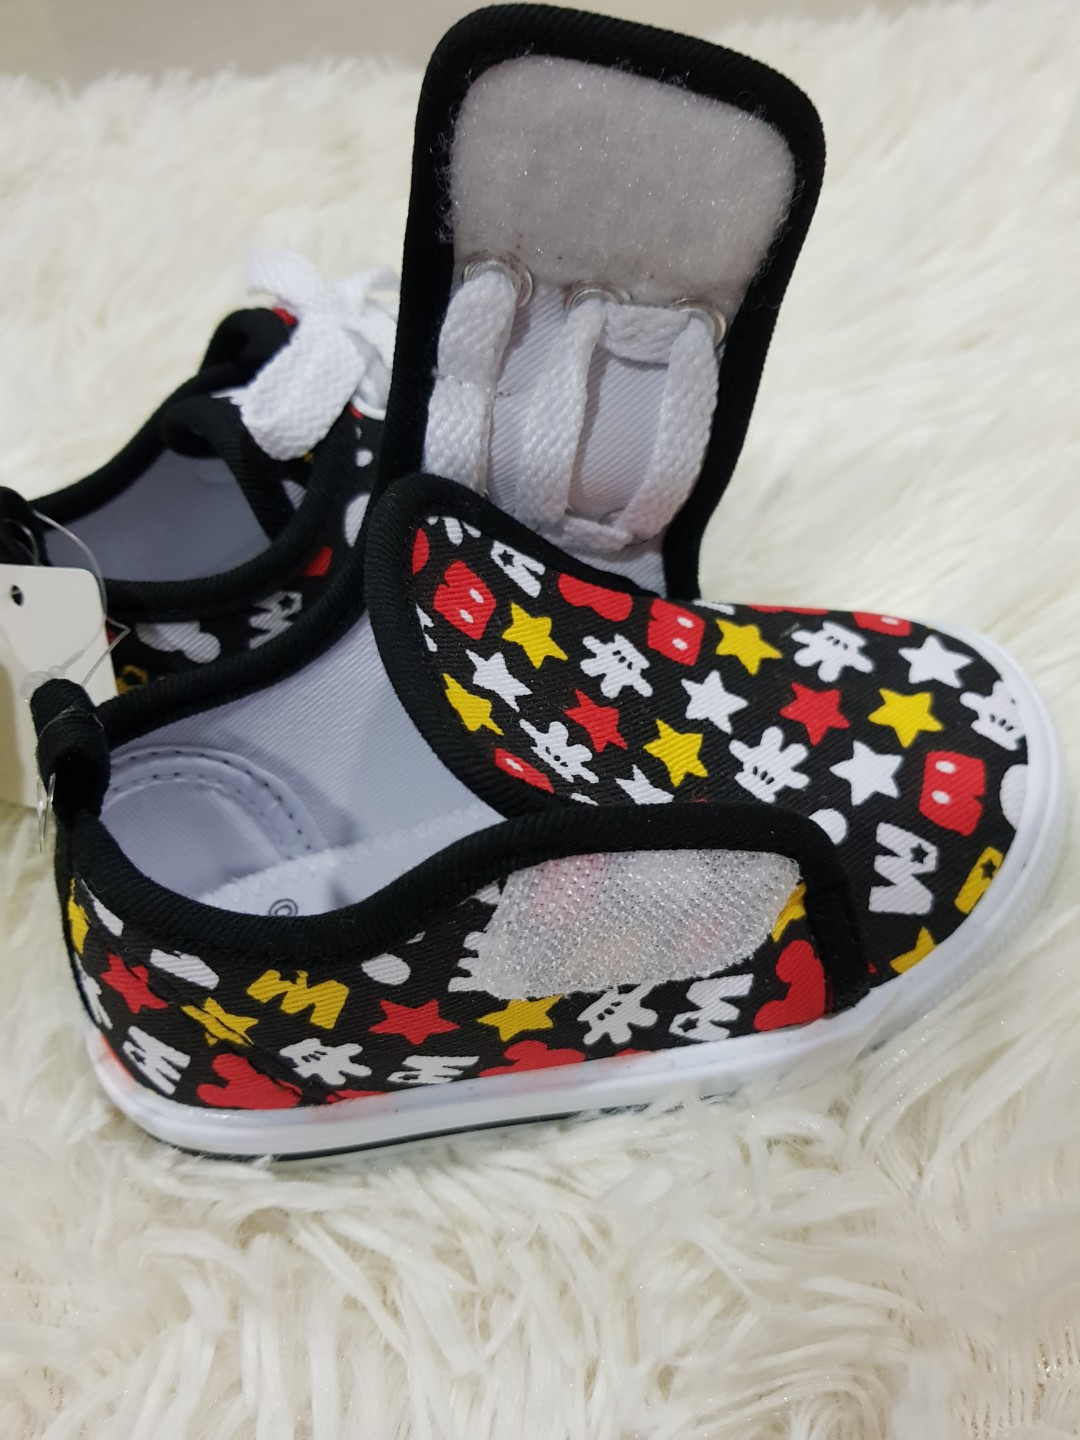 9f4ce5fc1e Japan Disney Mickey Mouse Shoes Baby Toddler